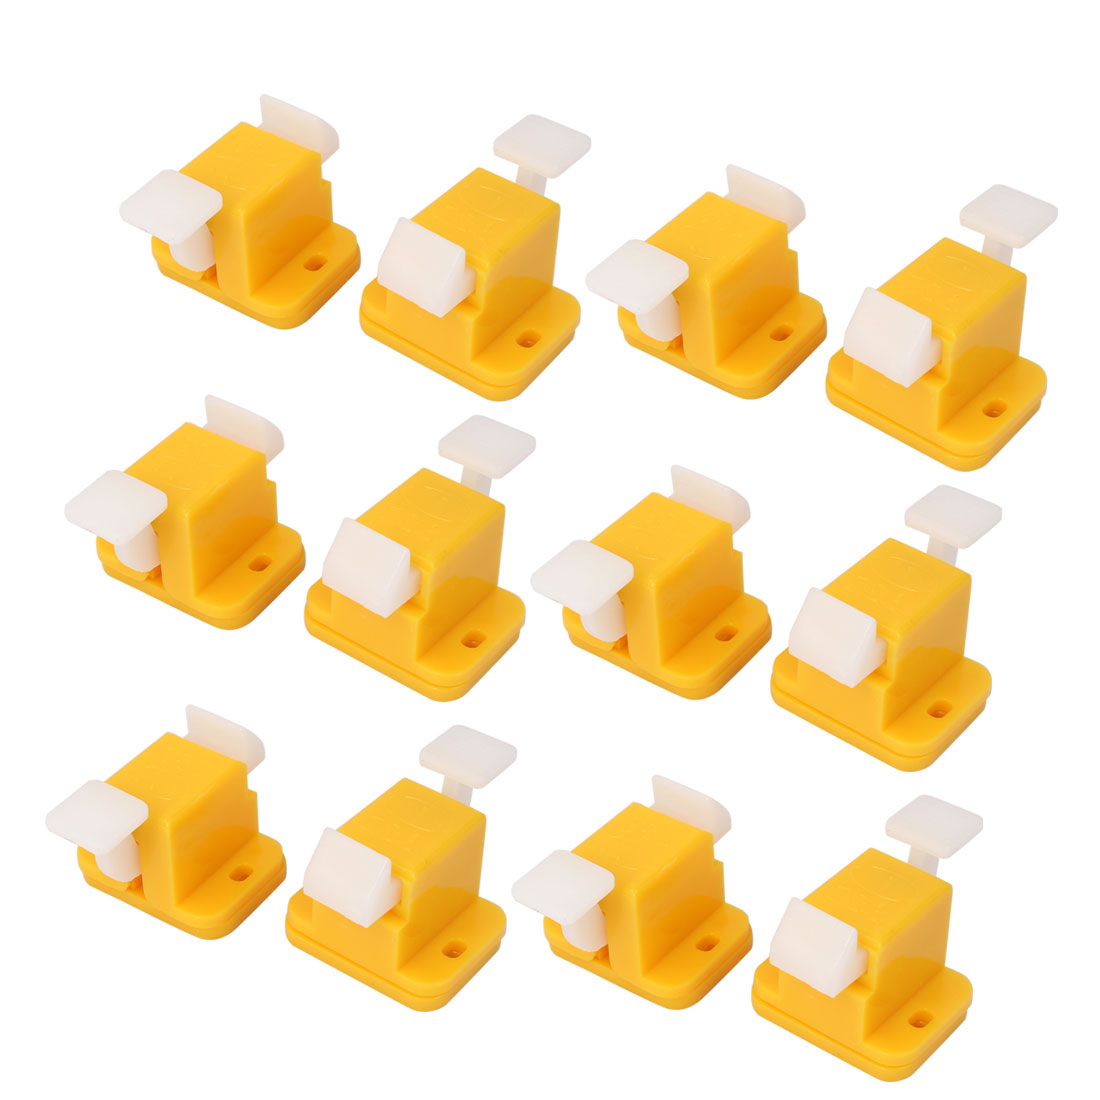 Plastic PCB Board Prototype Test Fixture Jig Latches Yellow White 12pcs